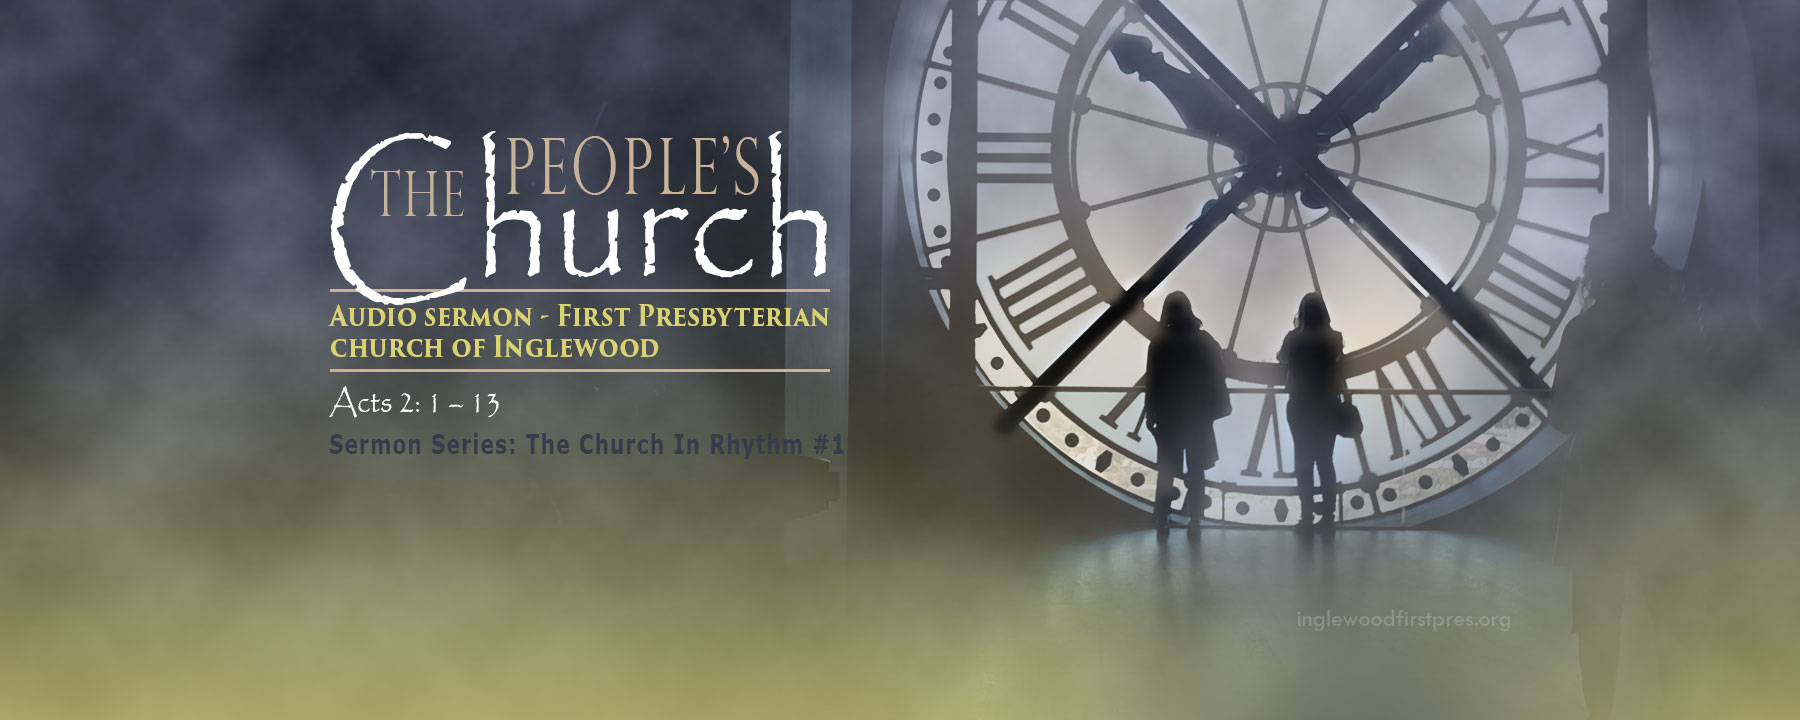 AUDIO SERMON: The People's Church by Rev. Dr. Harold E. Kidd (Acts 2: 1 – 13; Ecclesiastes 3:1)